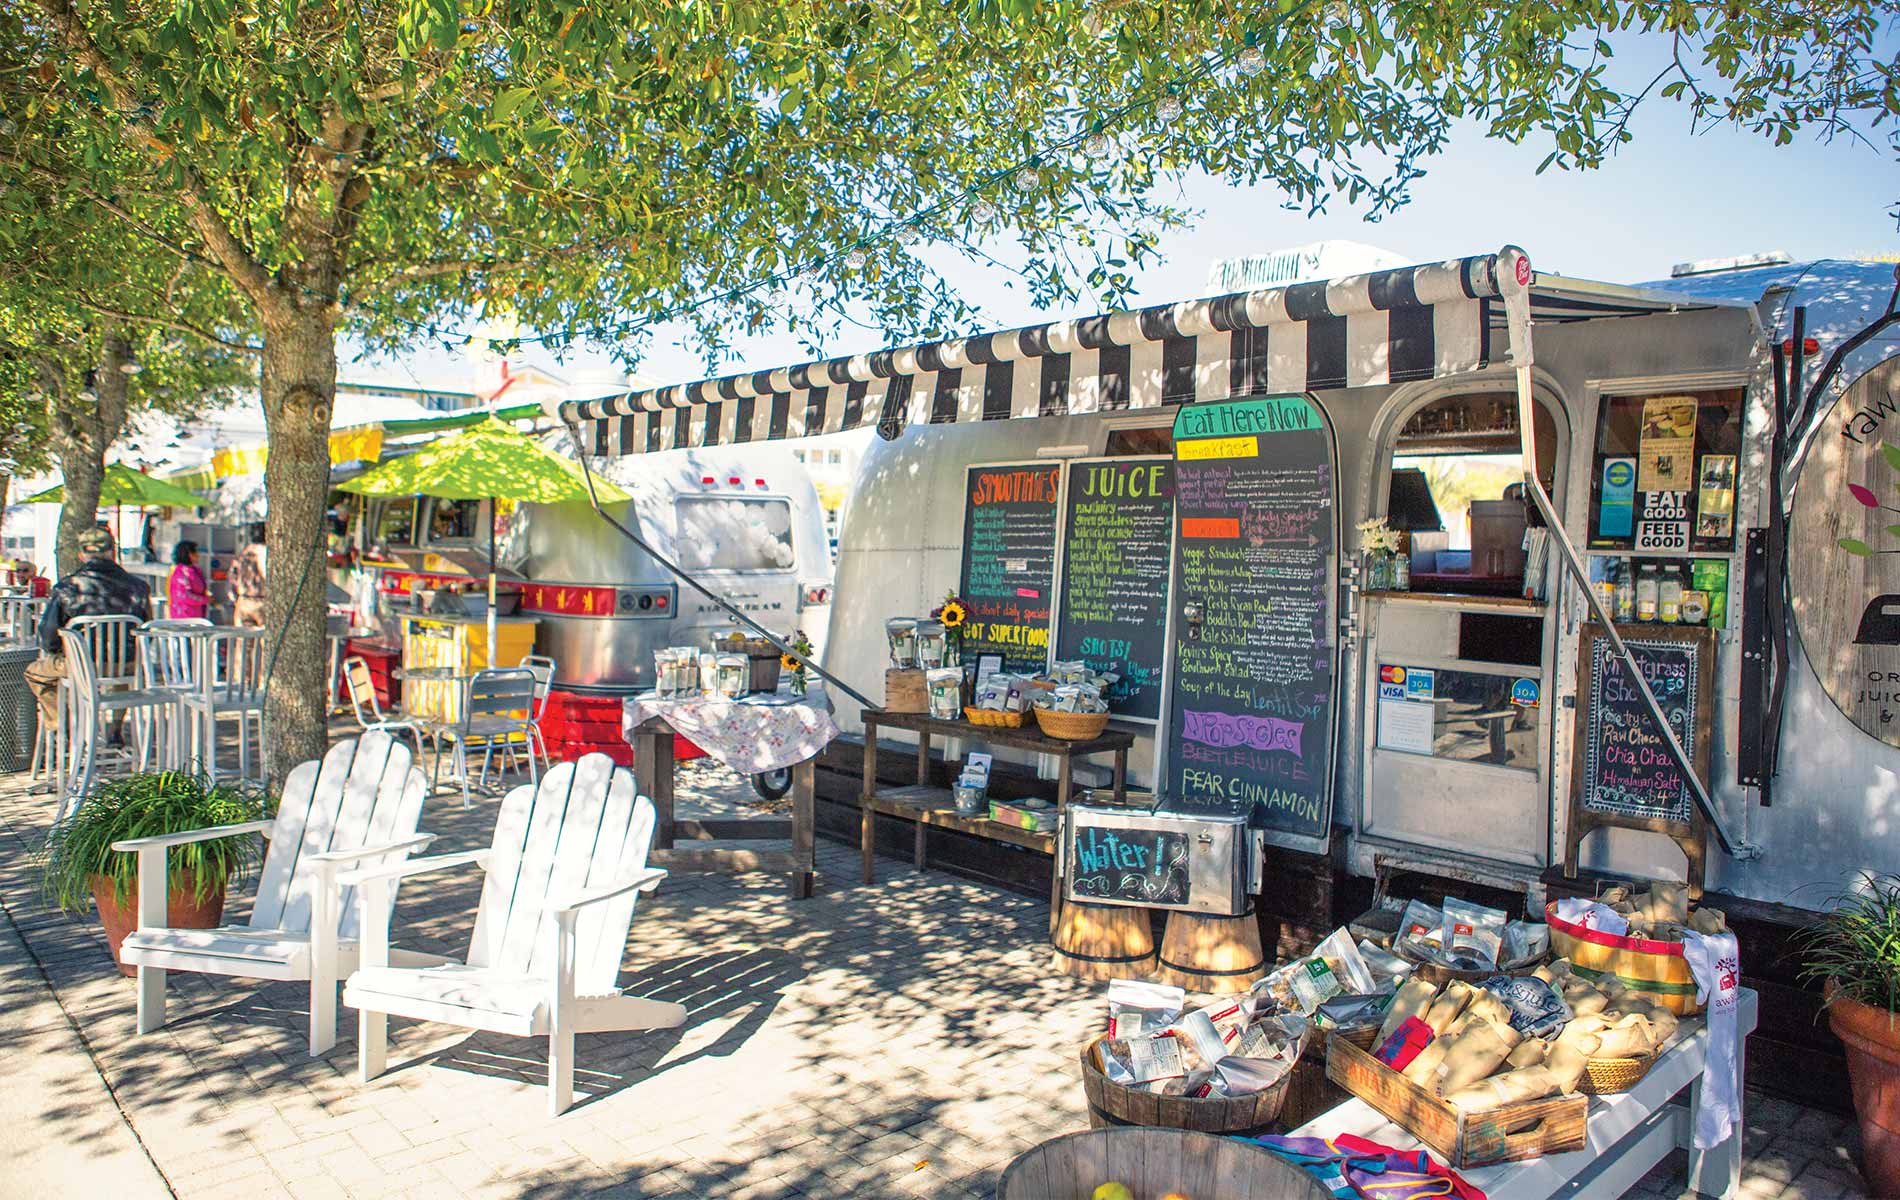 Food trucks in Seaside raw and juicy